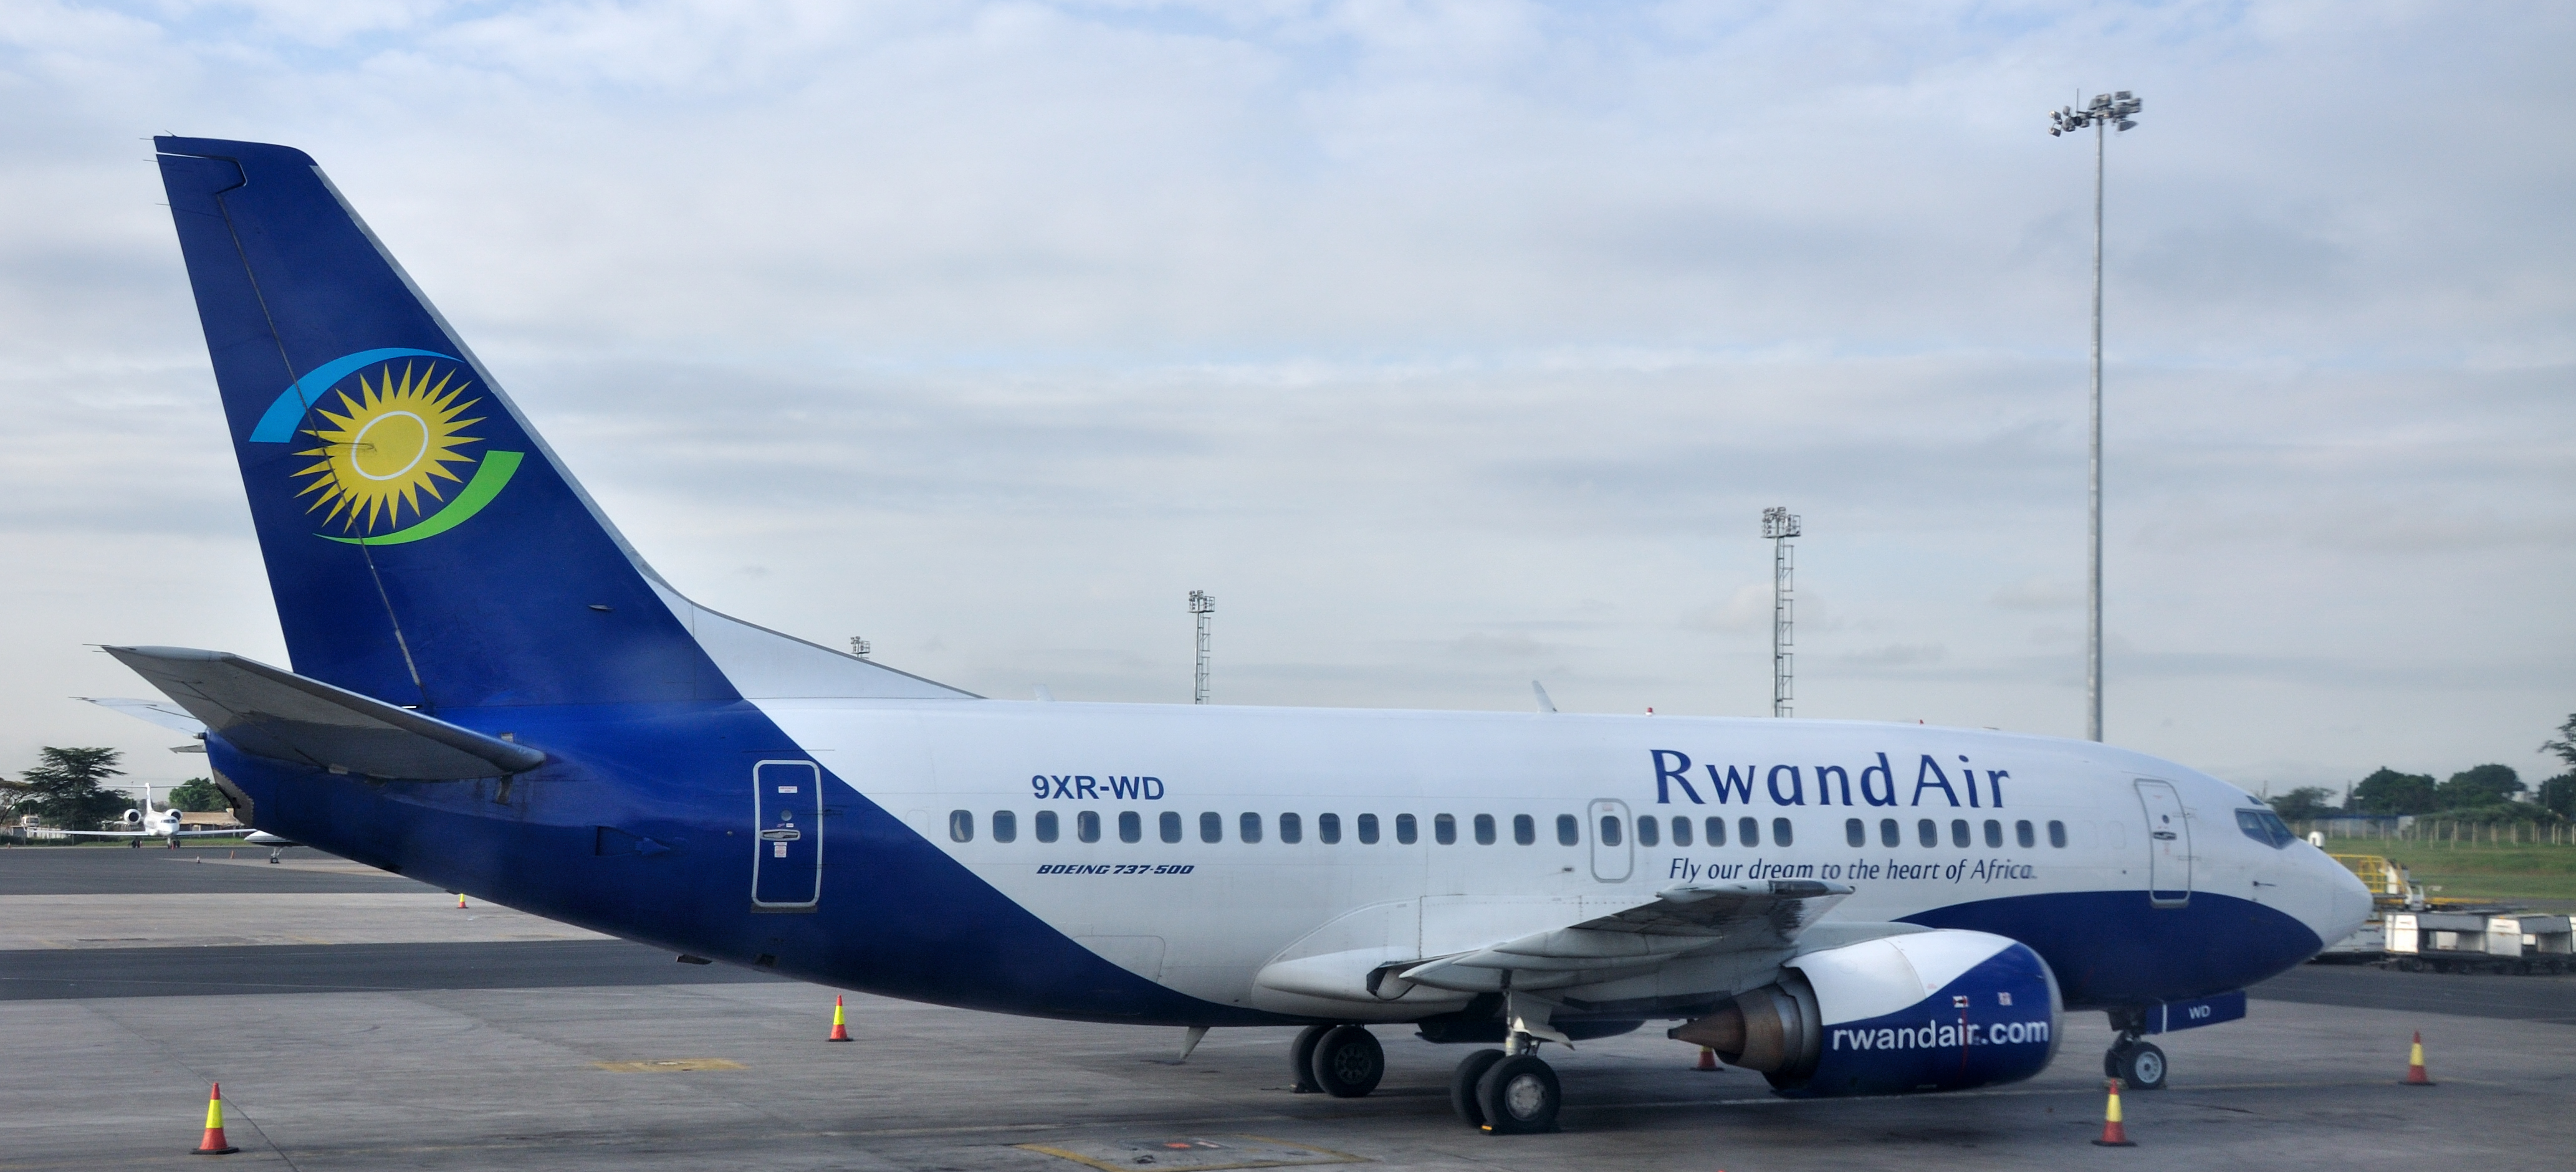 RwandAir on the run way